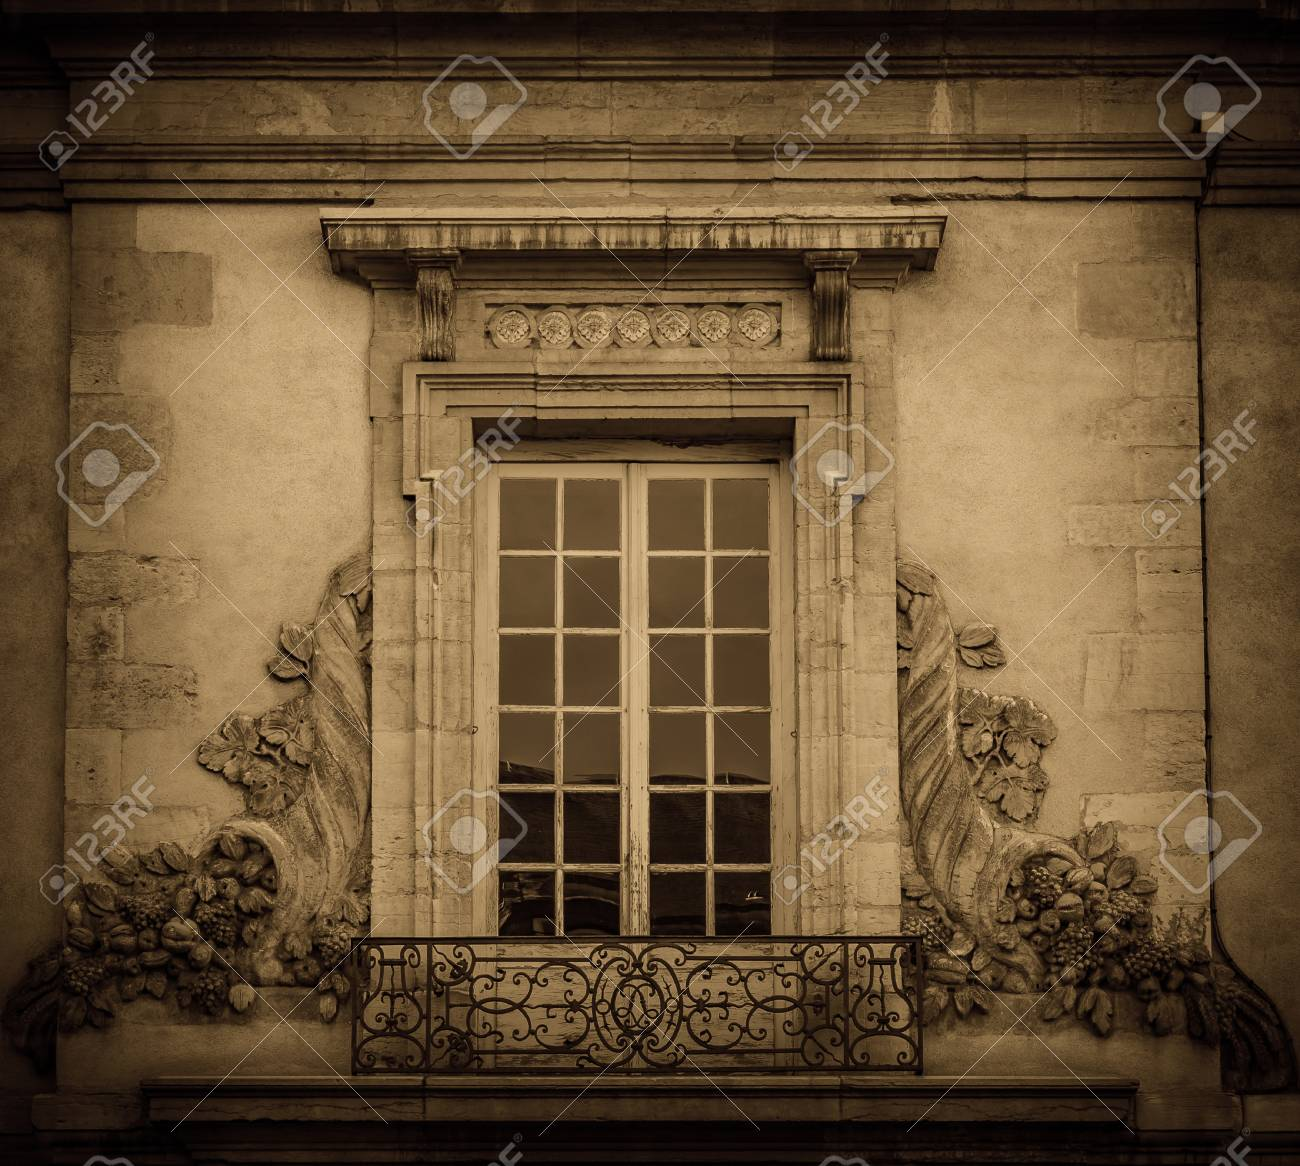 Big Old Window And Decoration On The Facade. City Of Dijon